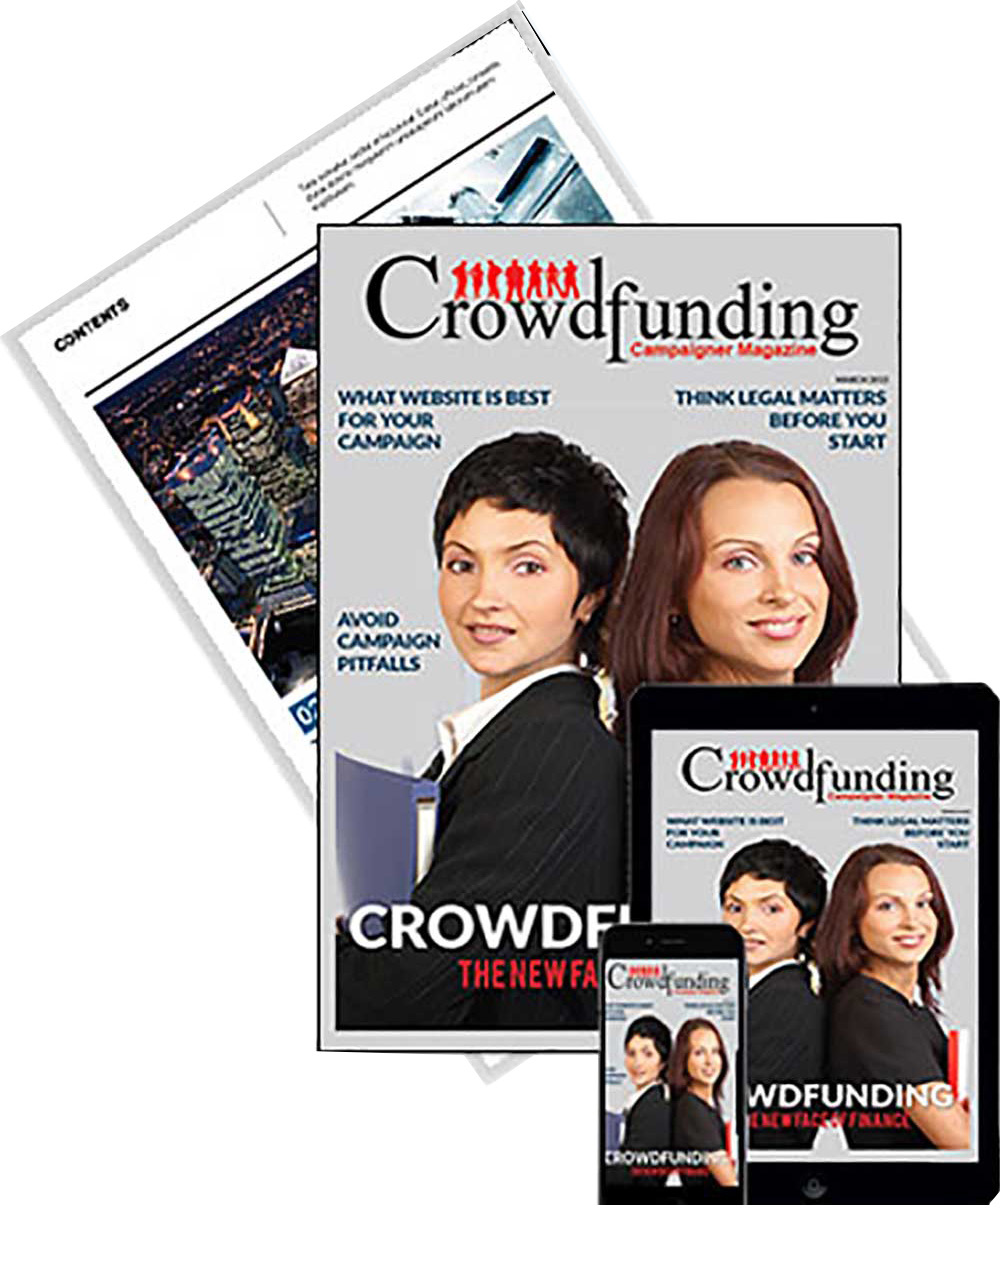 INSPIRING CONTENT Empowering Entrepreneurship We have seen a rapid growth in start-ups and entrepreneurship over the recent years and can associate crowdfunding as a driver to empowerment.